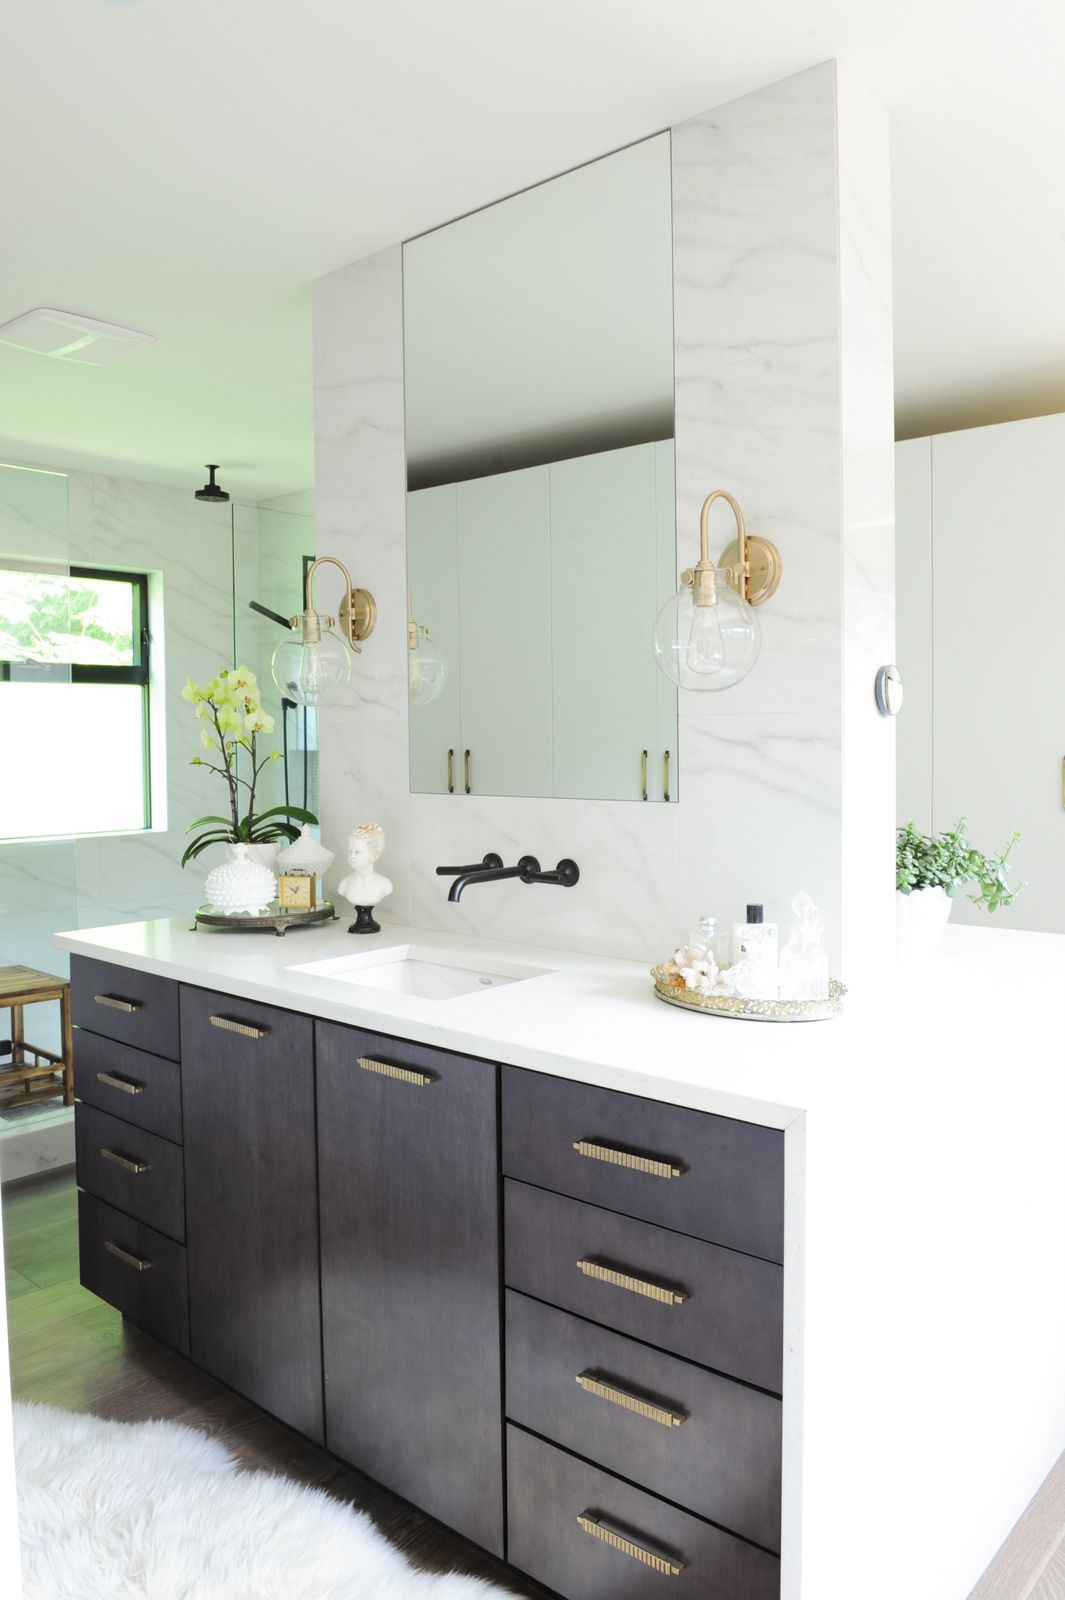 Bathroom vanities boca raton fl - His And Her Vanity Island Marble Tile Wall Mounted Faucets Waterfall Counter